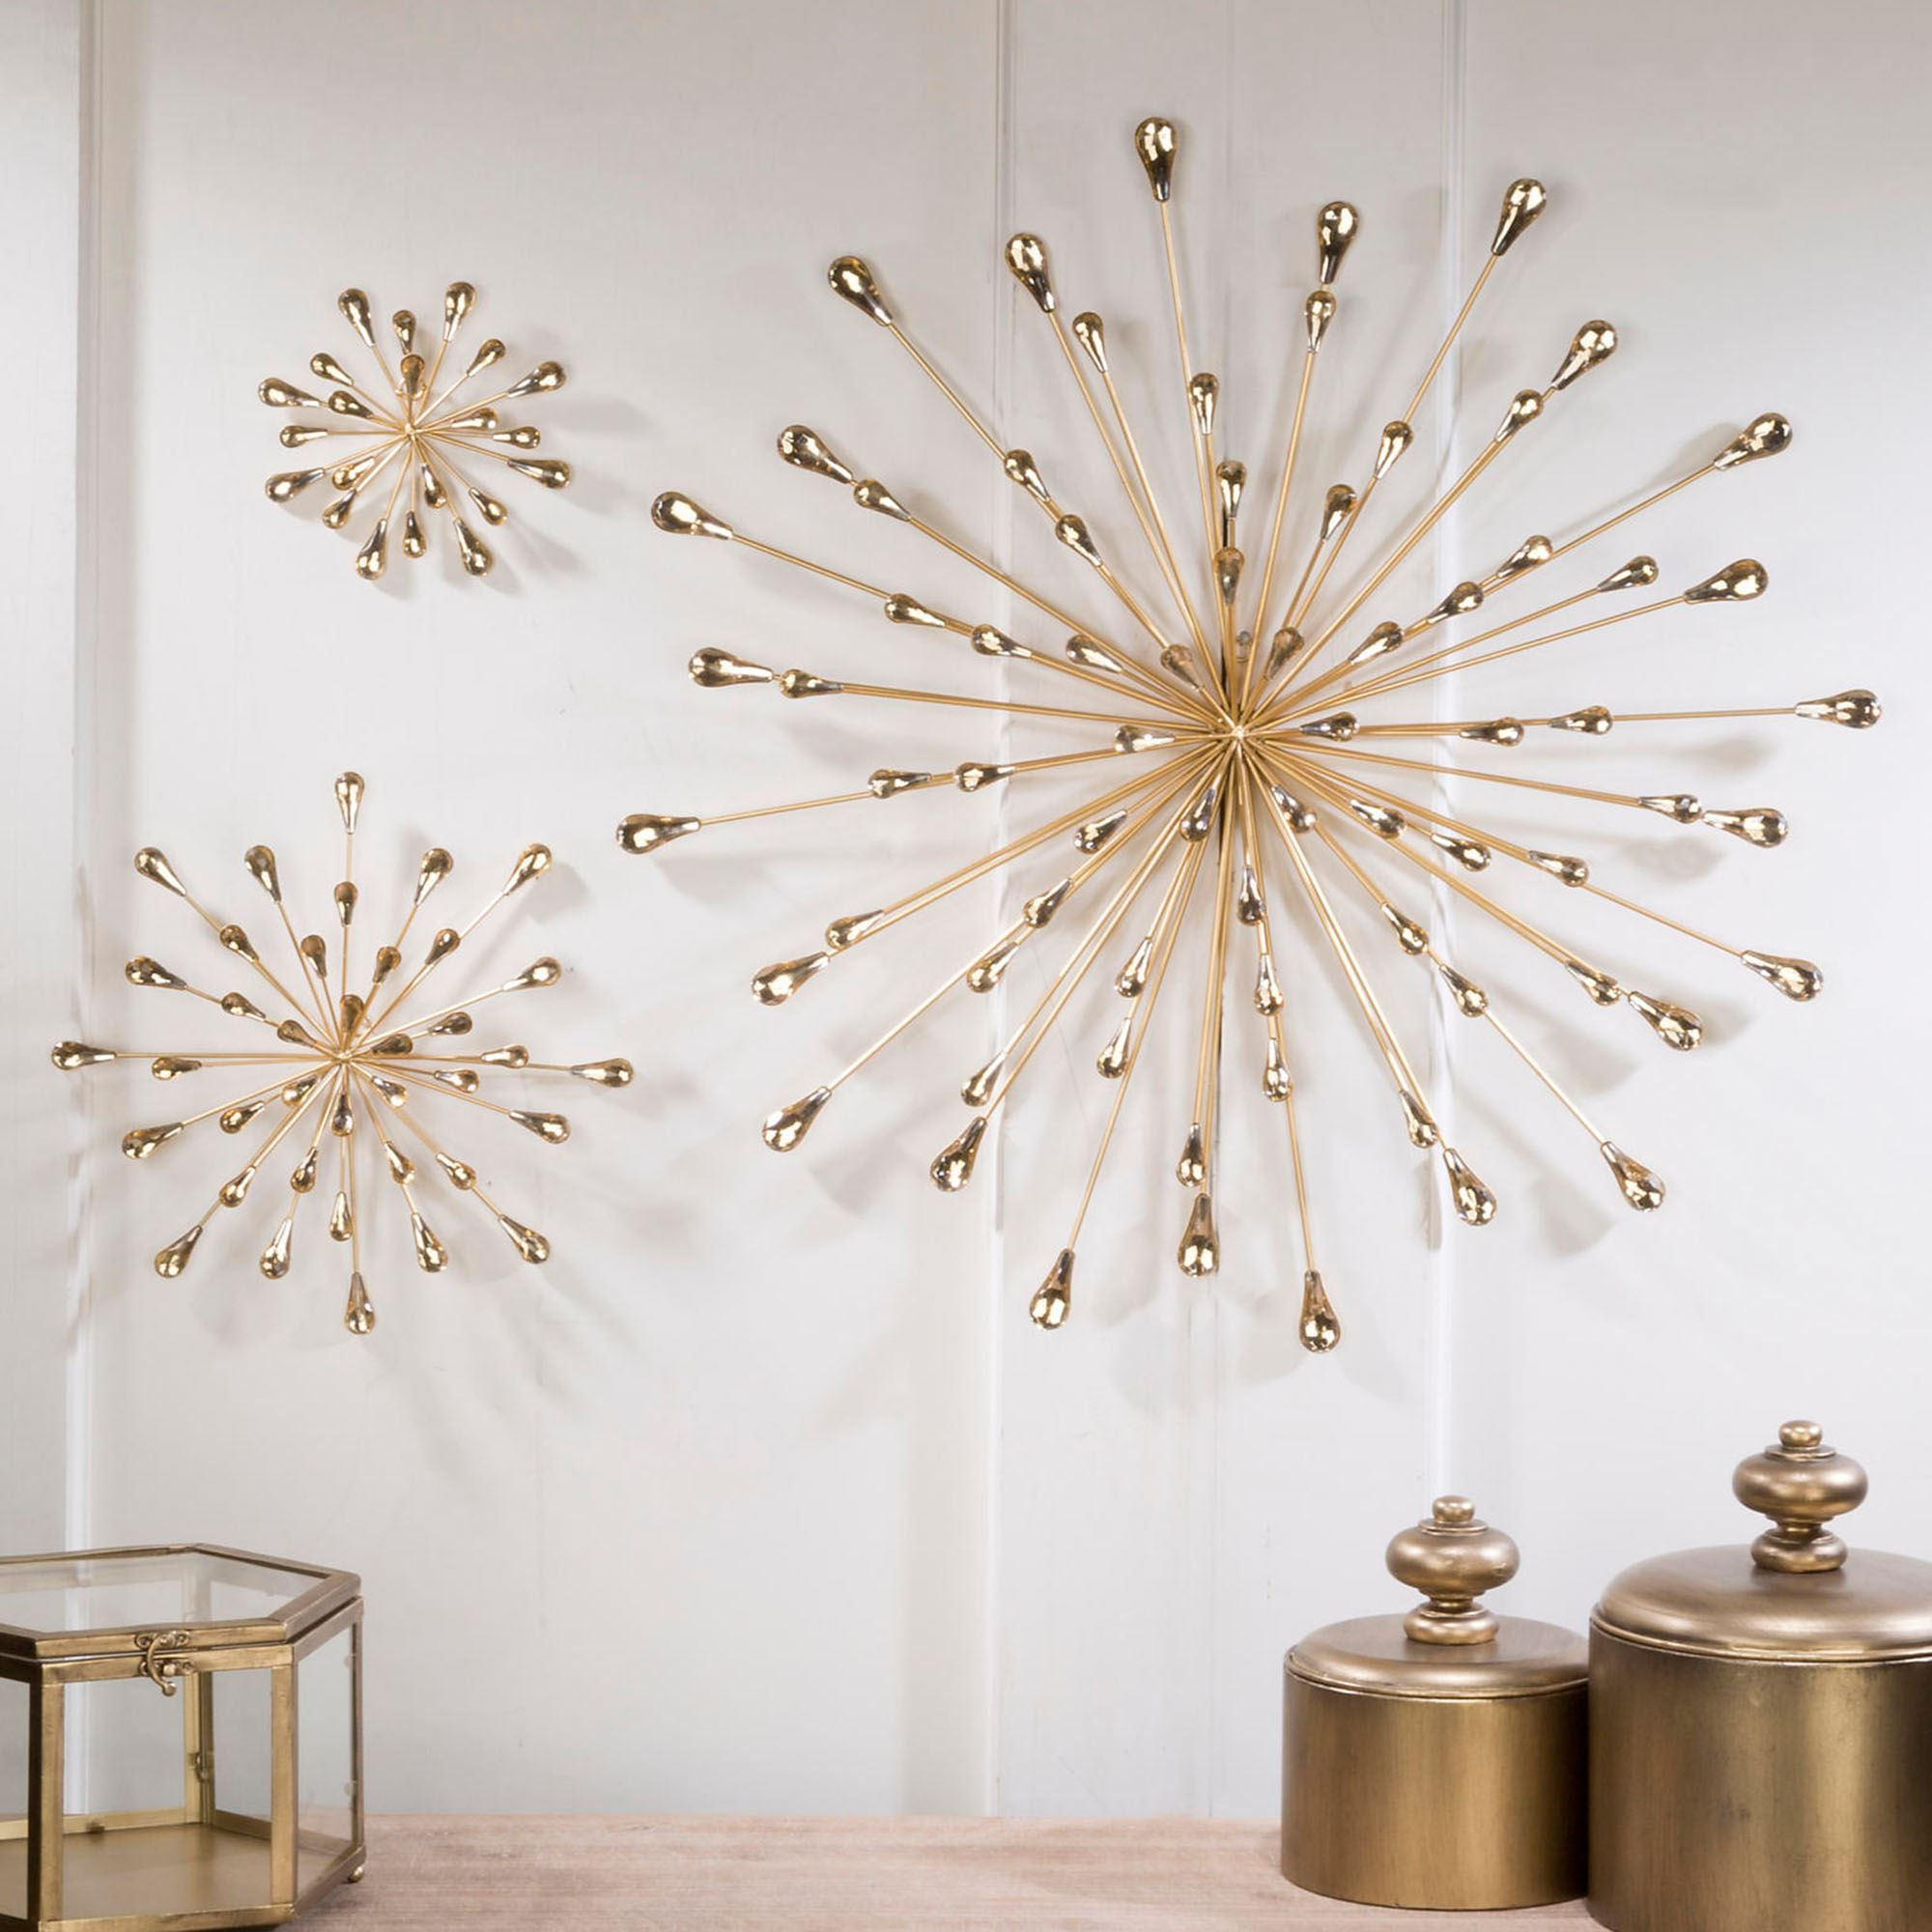 2020 2 Piece Starburst Wall Décor Set By Wrought Studio With Jelena Gold Starburst Metal Wall Art (View 5 of 20)